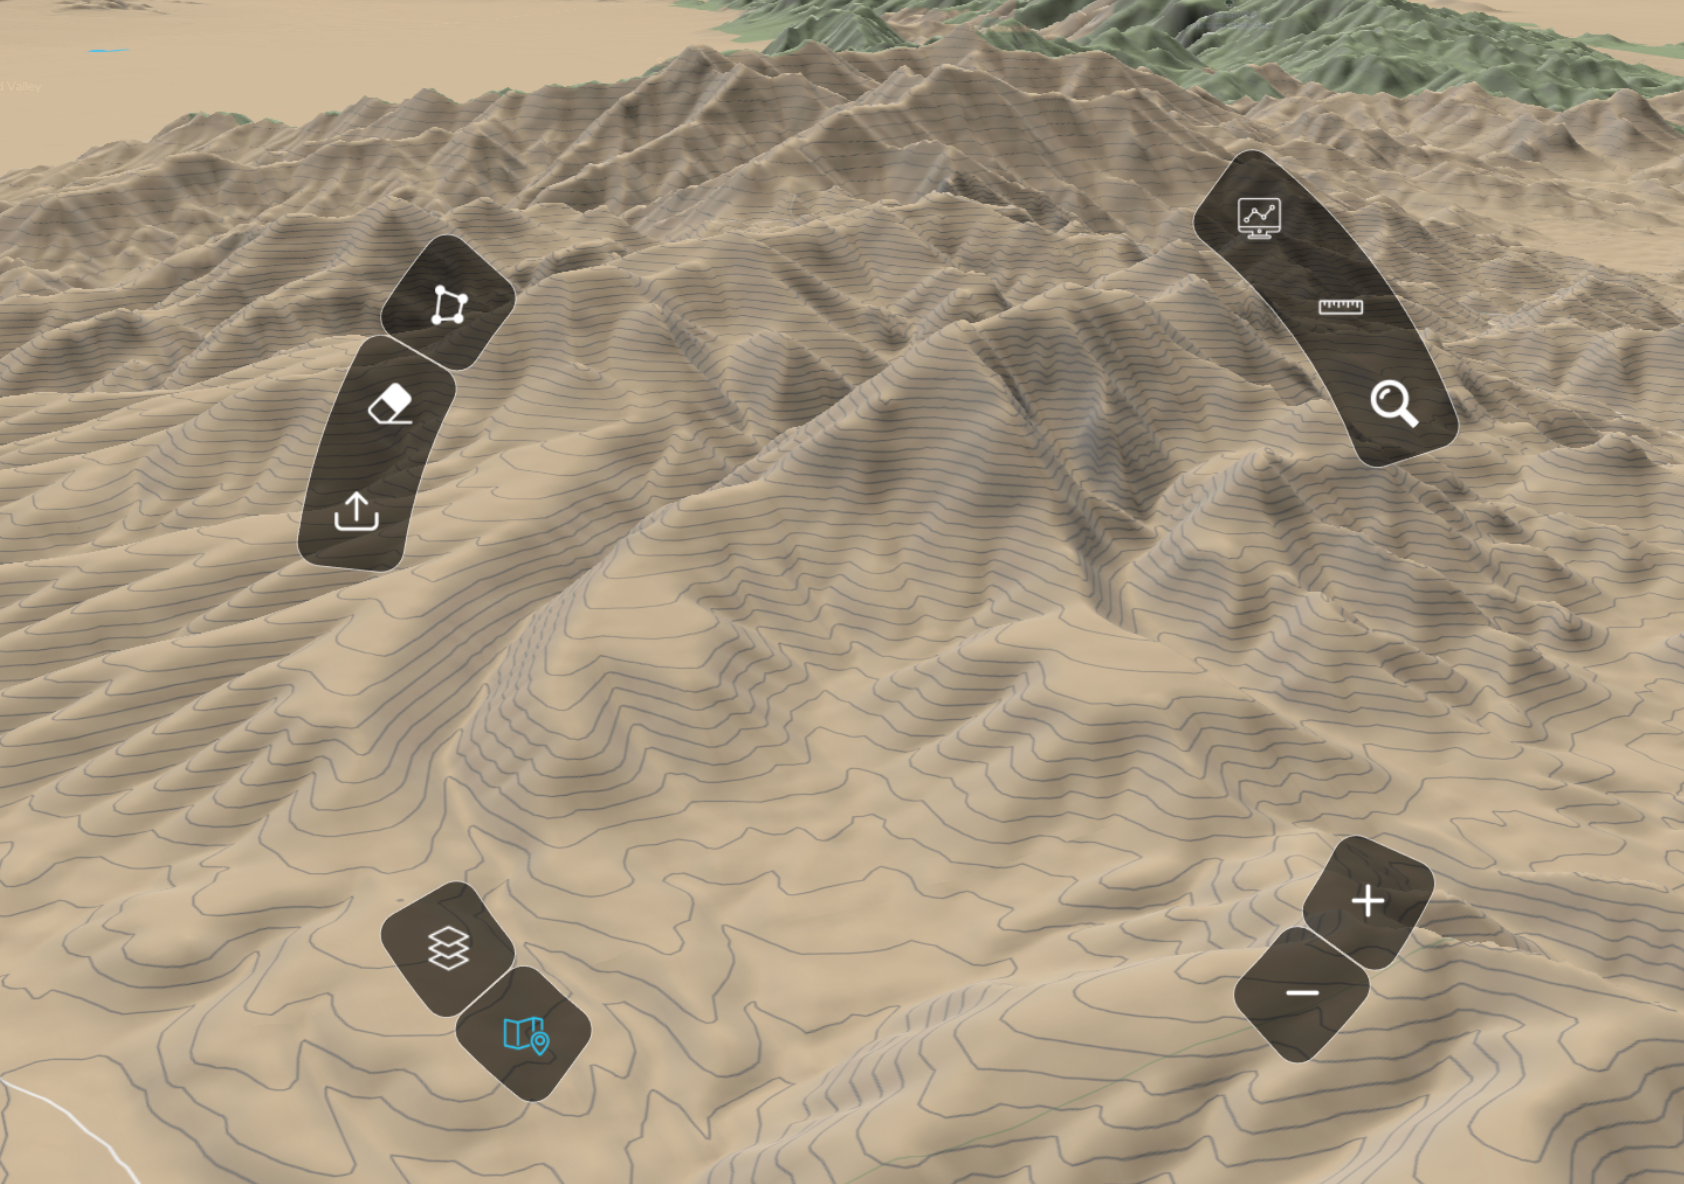 b. New terrain layer added to base maps